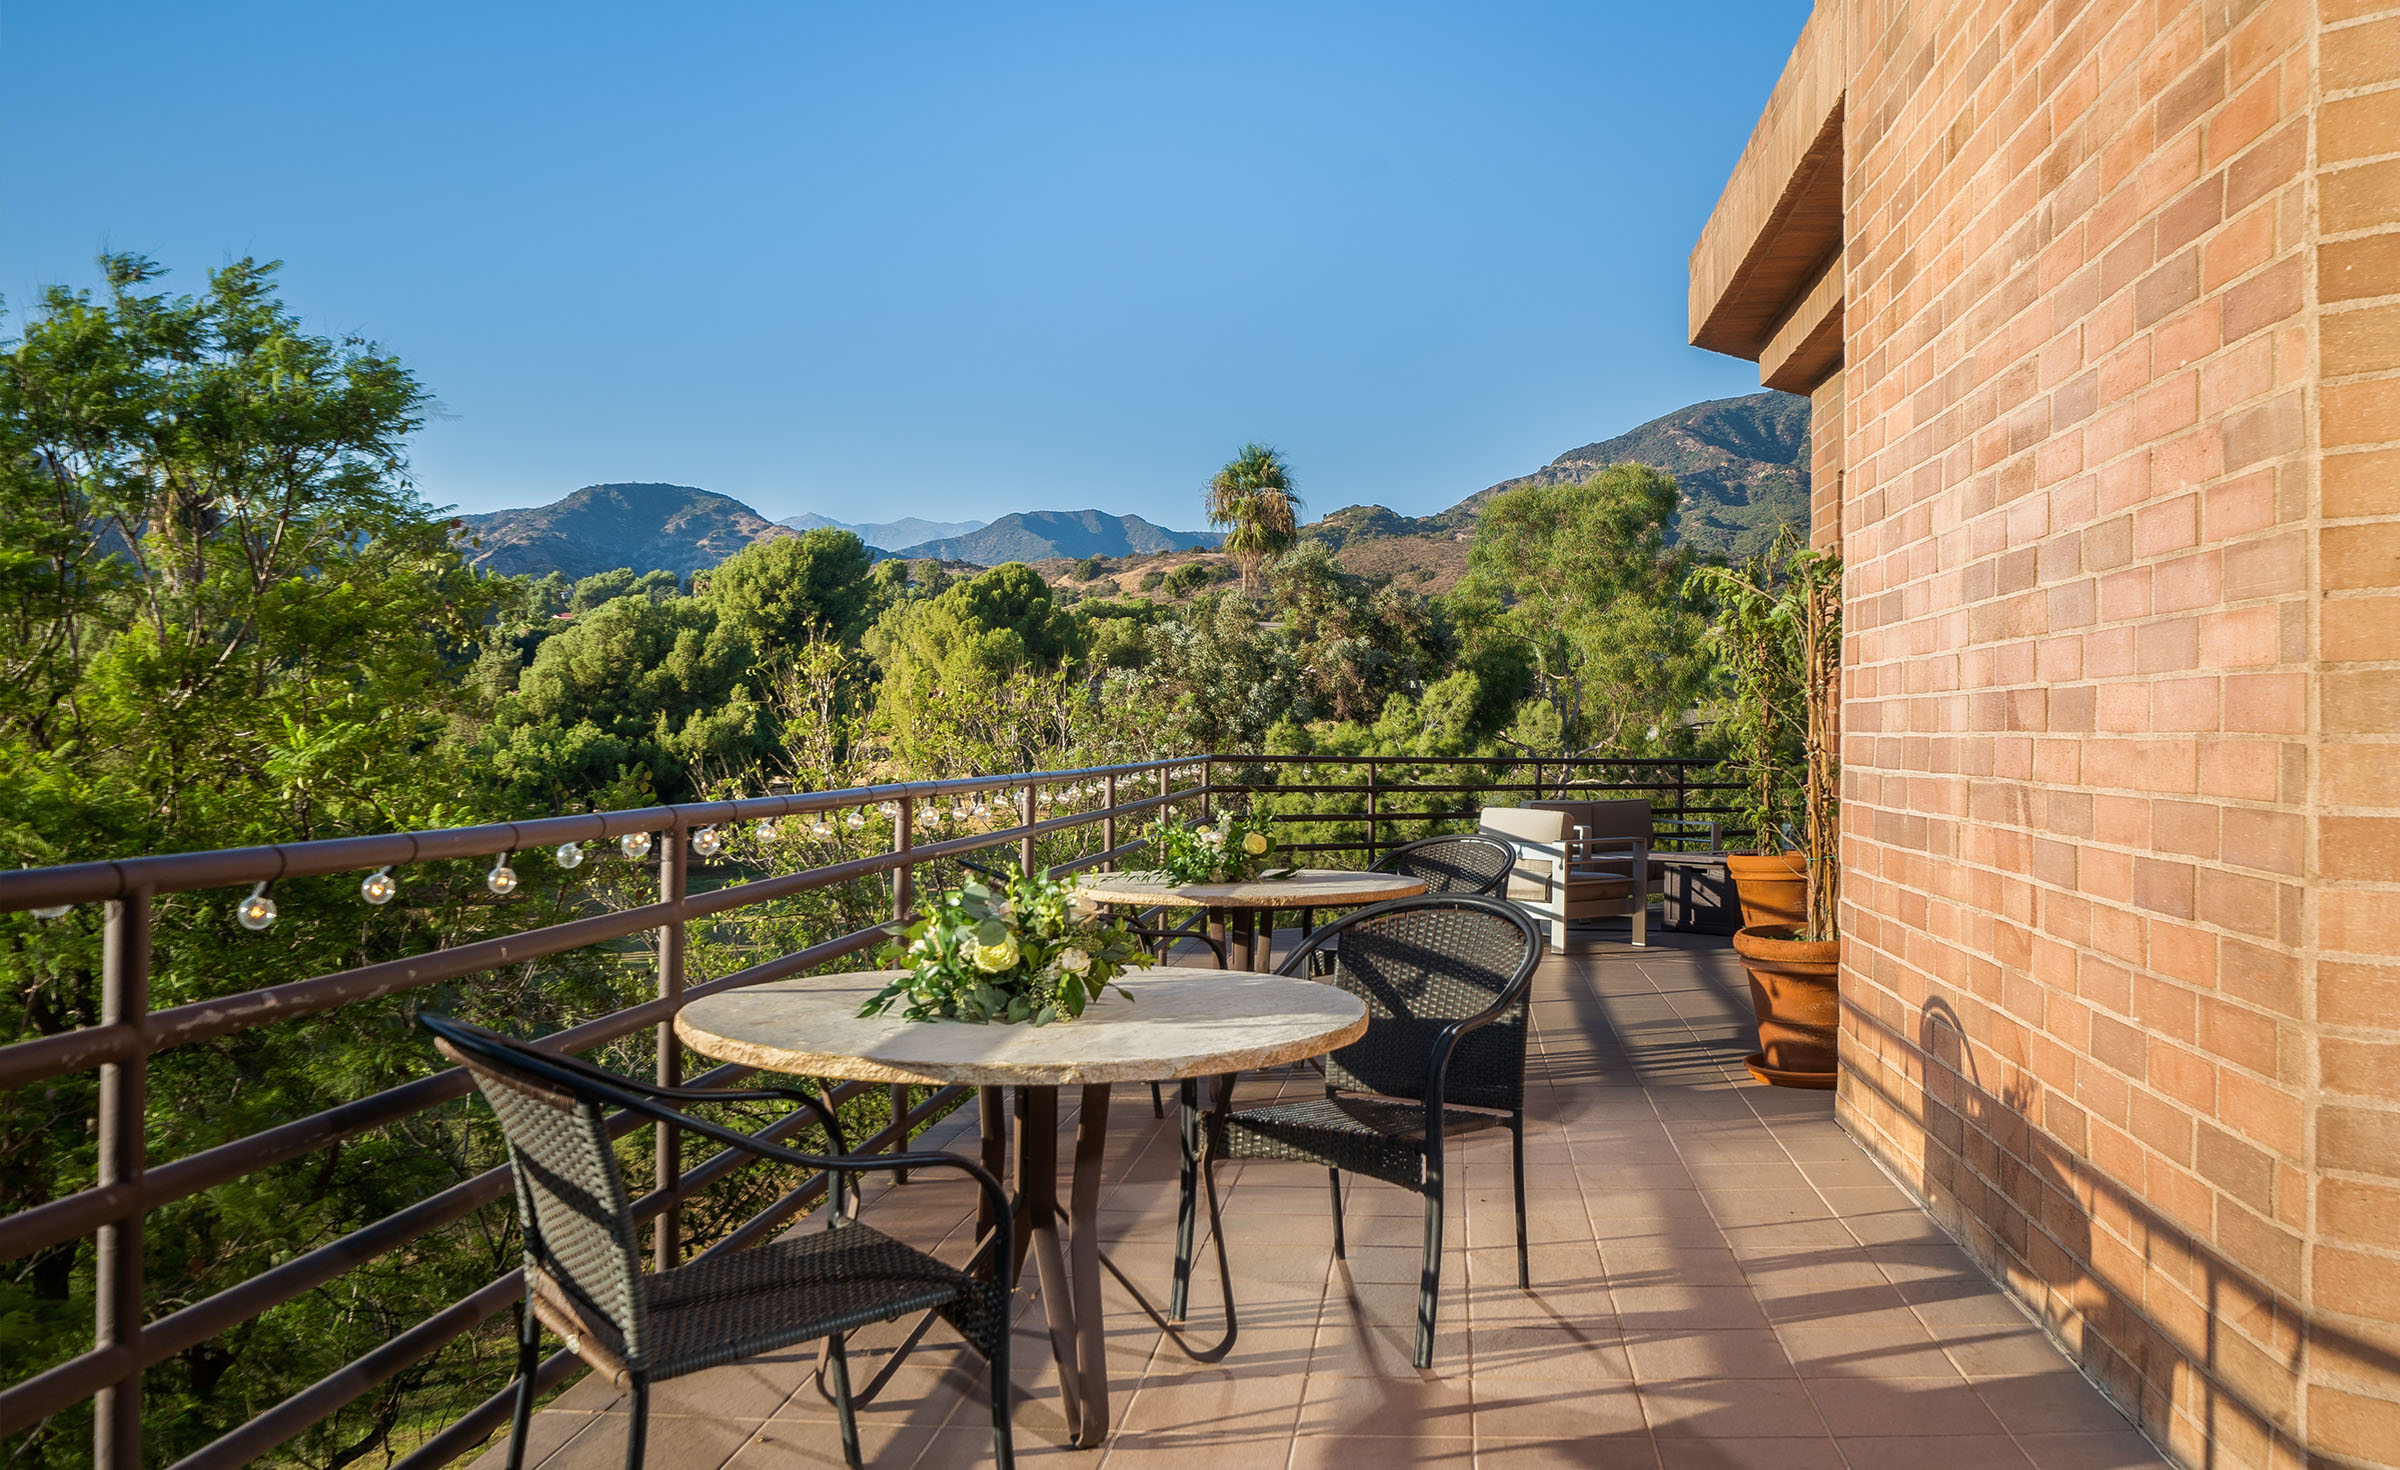 Cocktail patio with mountain views - Sierra La Verne - La Verne, California - Claremont Area - Los Angeles County - Wedgewood Weddings